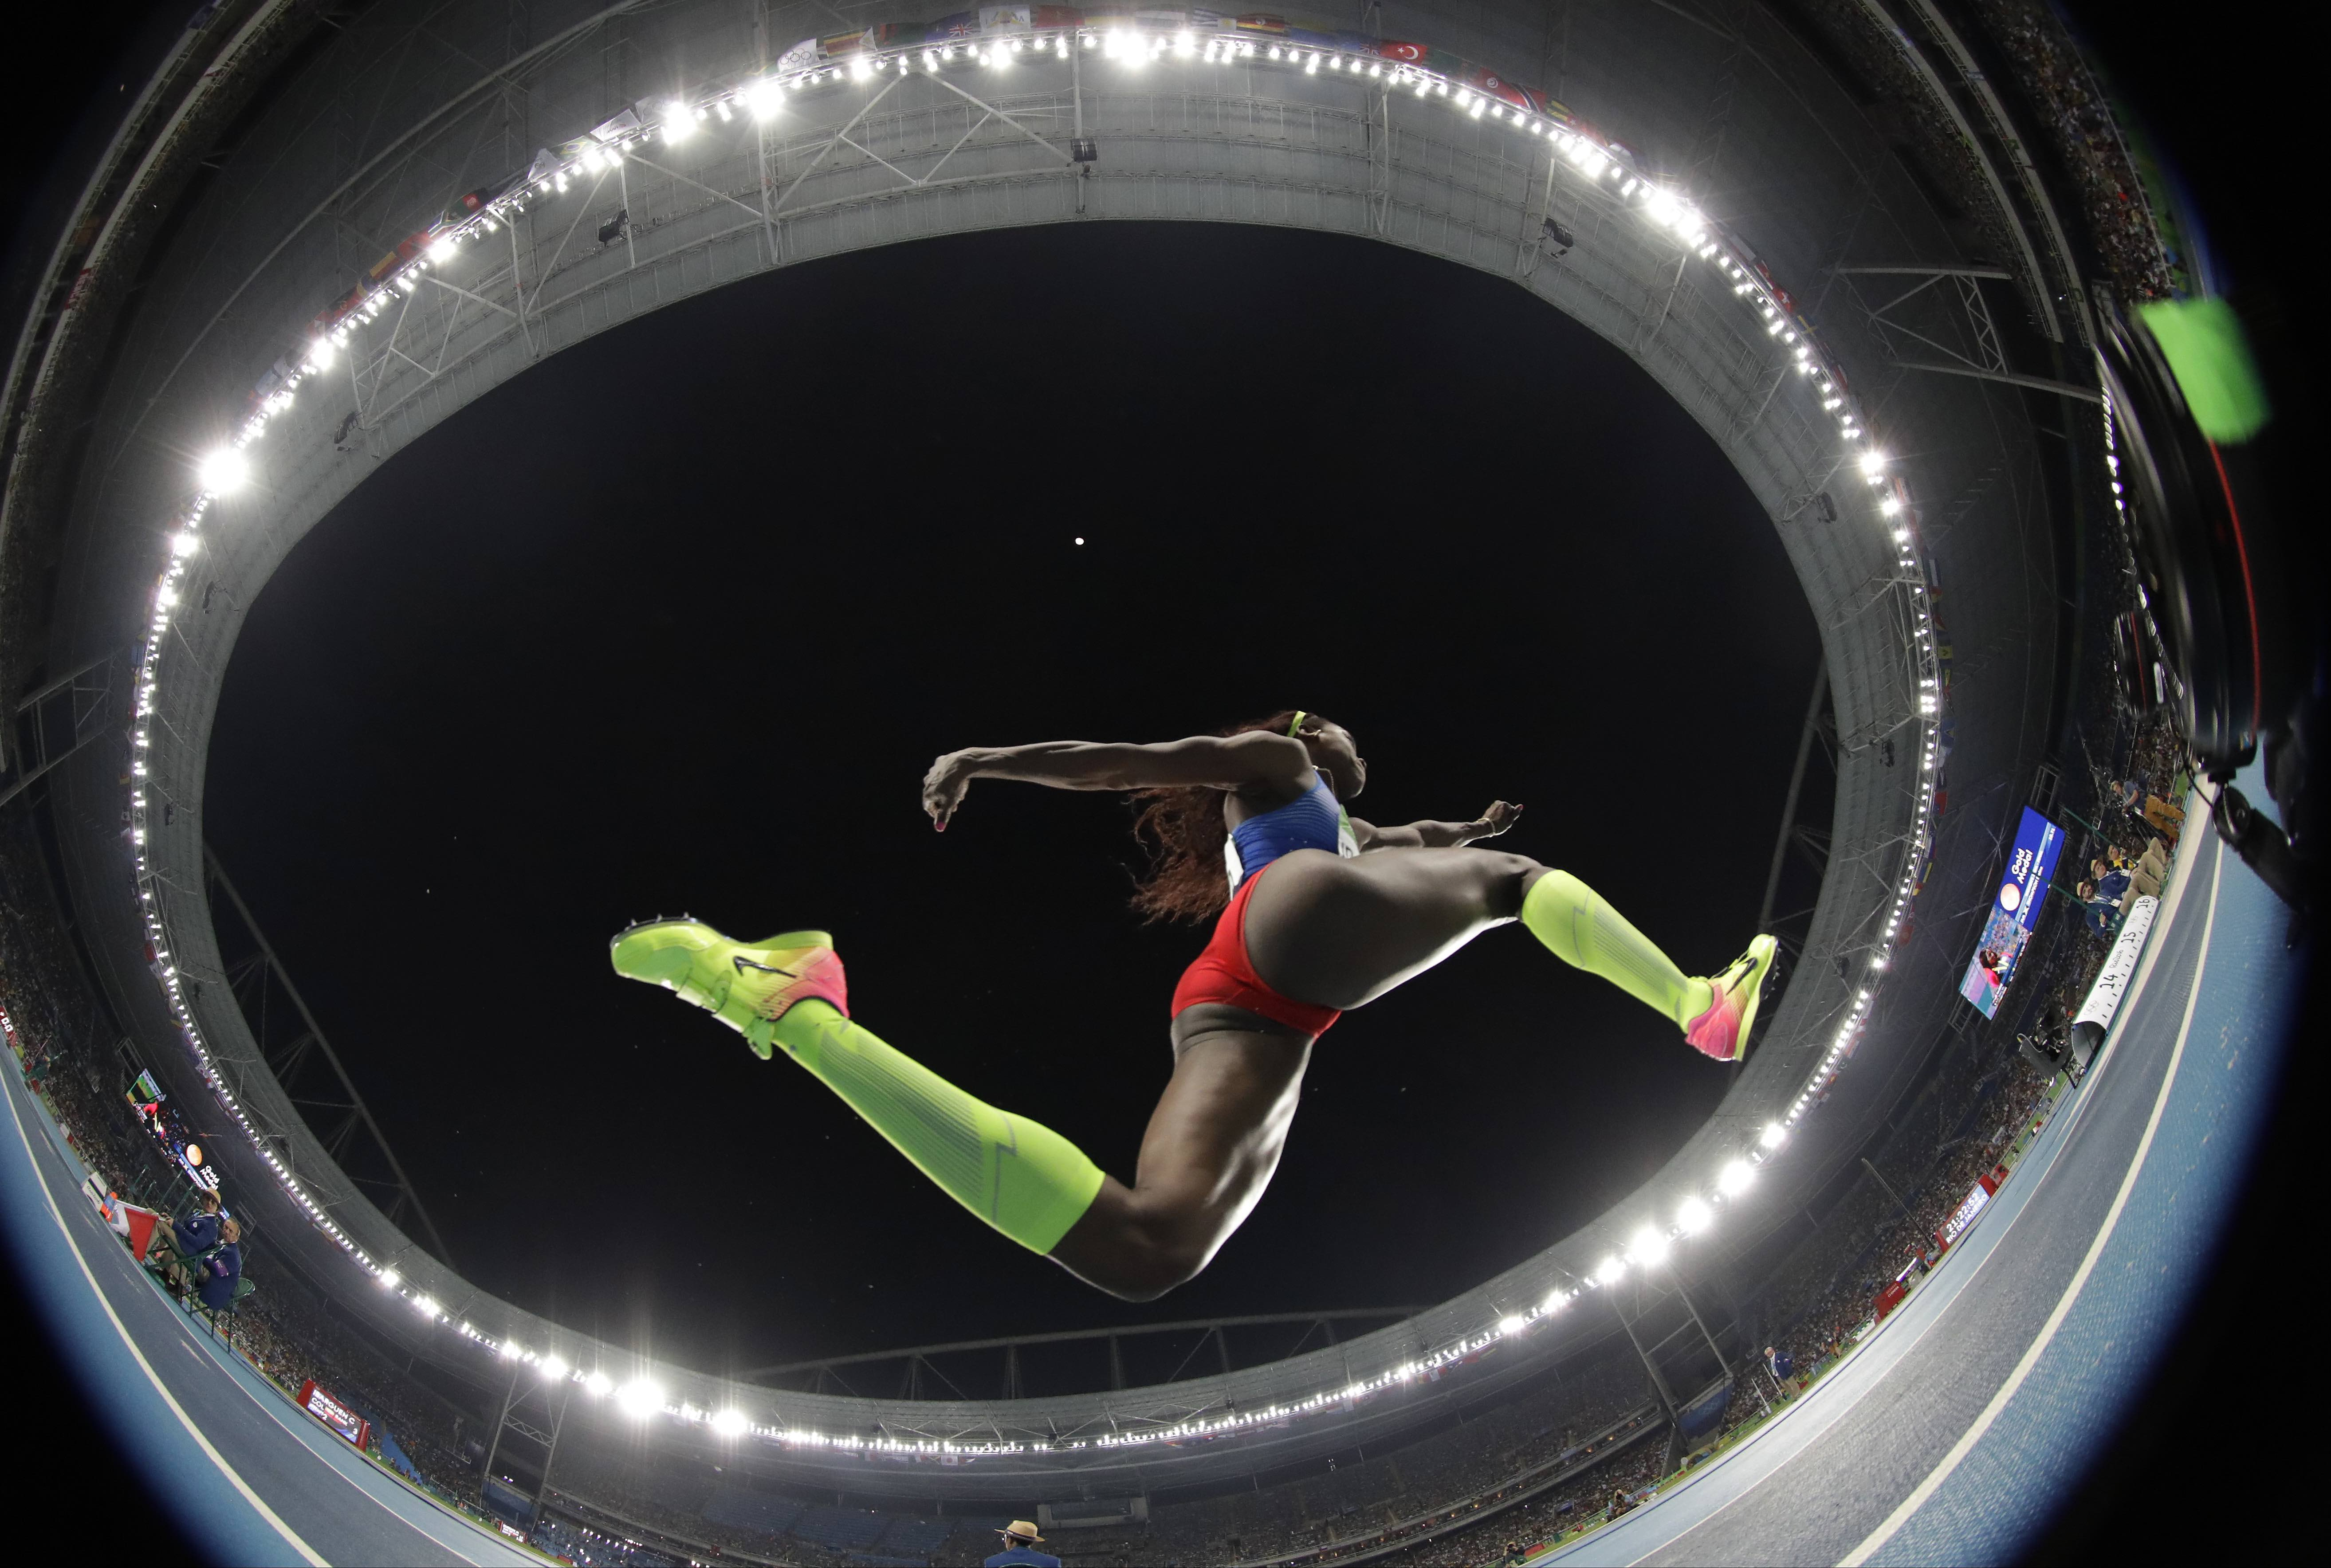 Colombia's gold medal winner Caterine Ibarguen makes an attempt in the women's triple jump final during the athletics competitions of the 2016 Summer Olympics at the Olympic stadium in Rio de Janeiro, Brazil, Sunday, Aug. 14, 2016. (AP Photo/Matt Dunham)